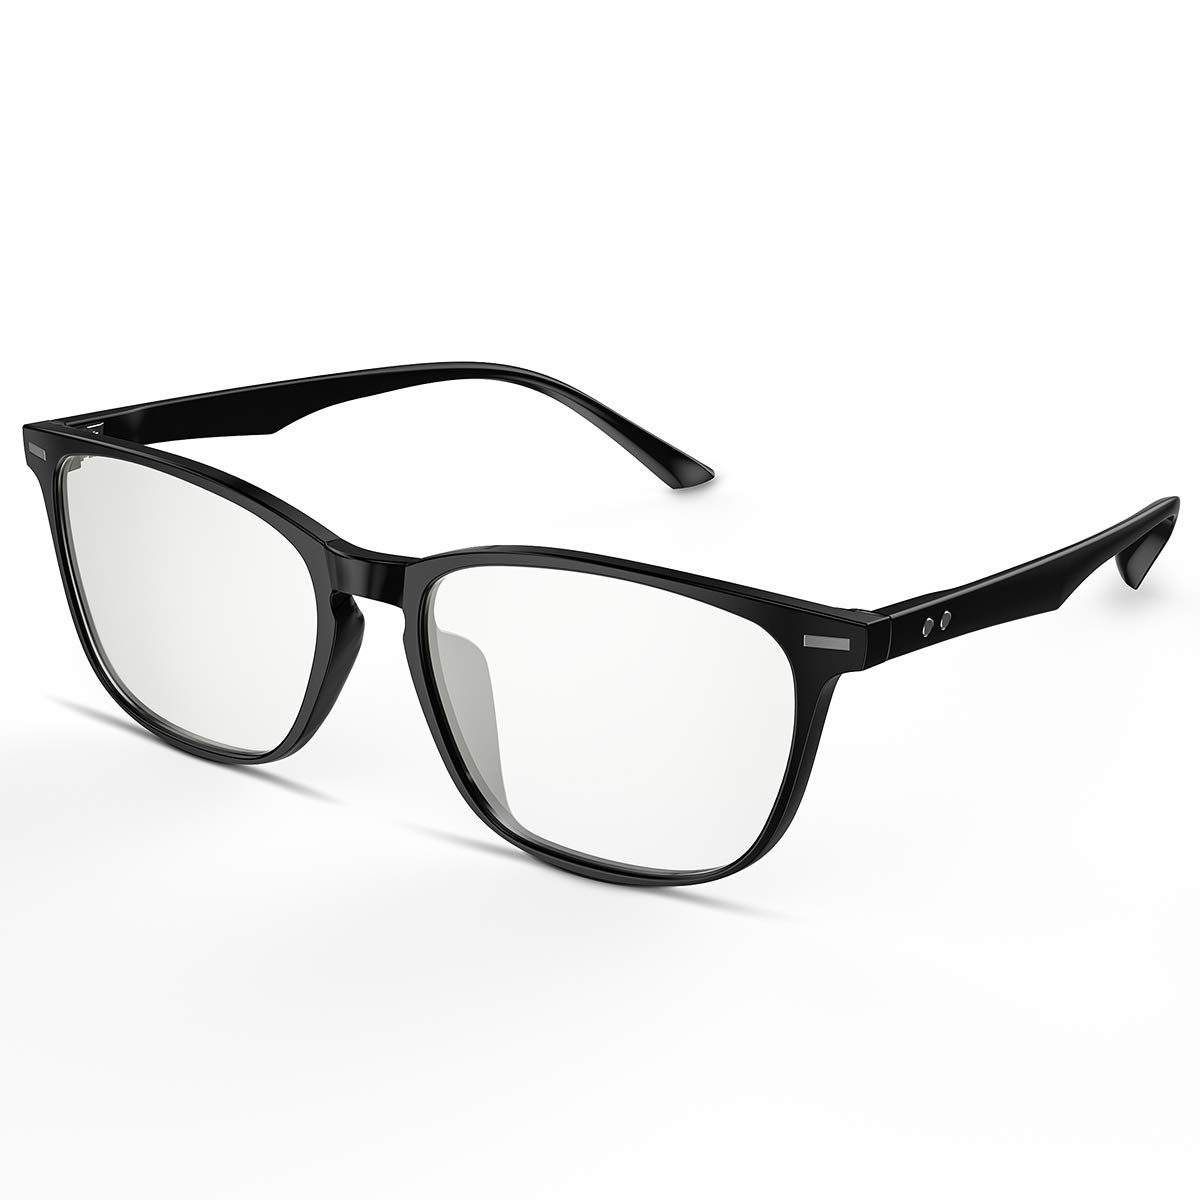 Blue Light Blocking Glasses-BEASEN Computer Glasses for Women and Man,Block UV Light to Reduce Eye Strain, Headaches, Migraines,Help Improve Productivity, Energy, and Gaming Focus,Black